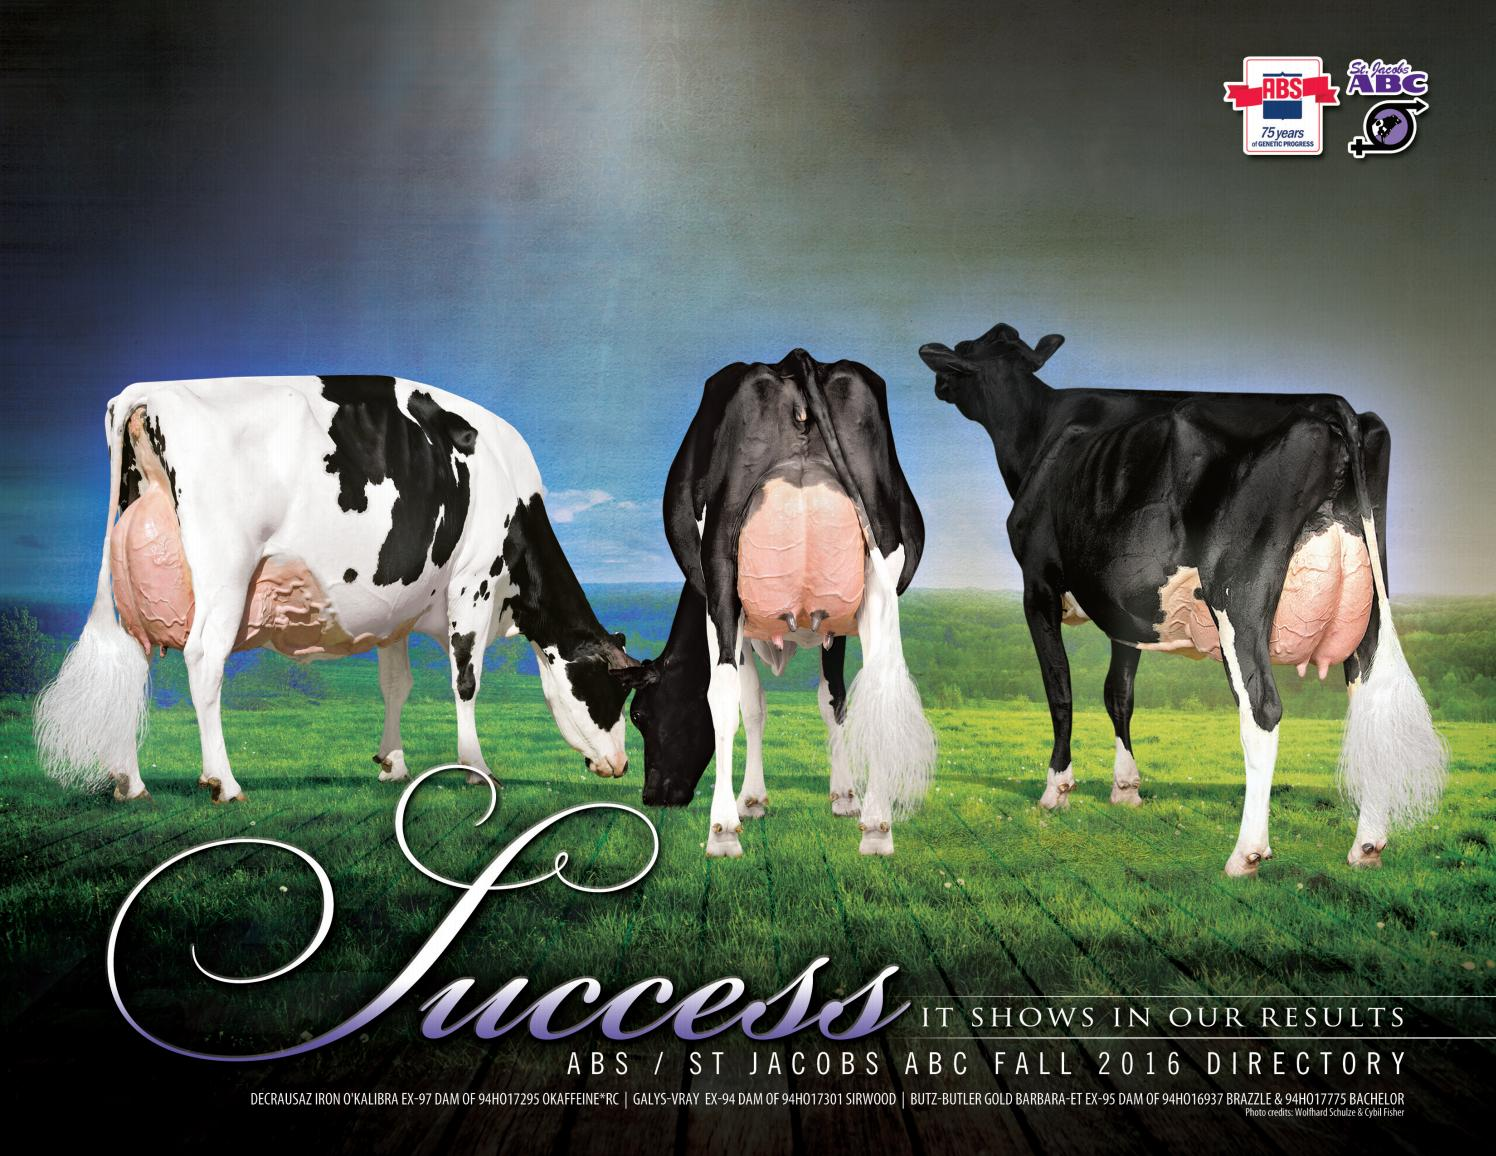 Fall 2016 abs st jacobs abc sire directory by abs global for Abc salon sire directory